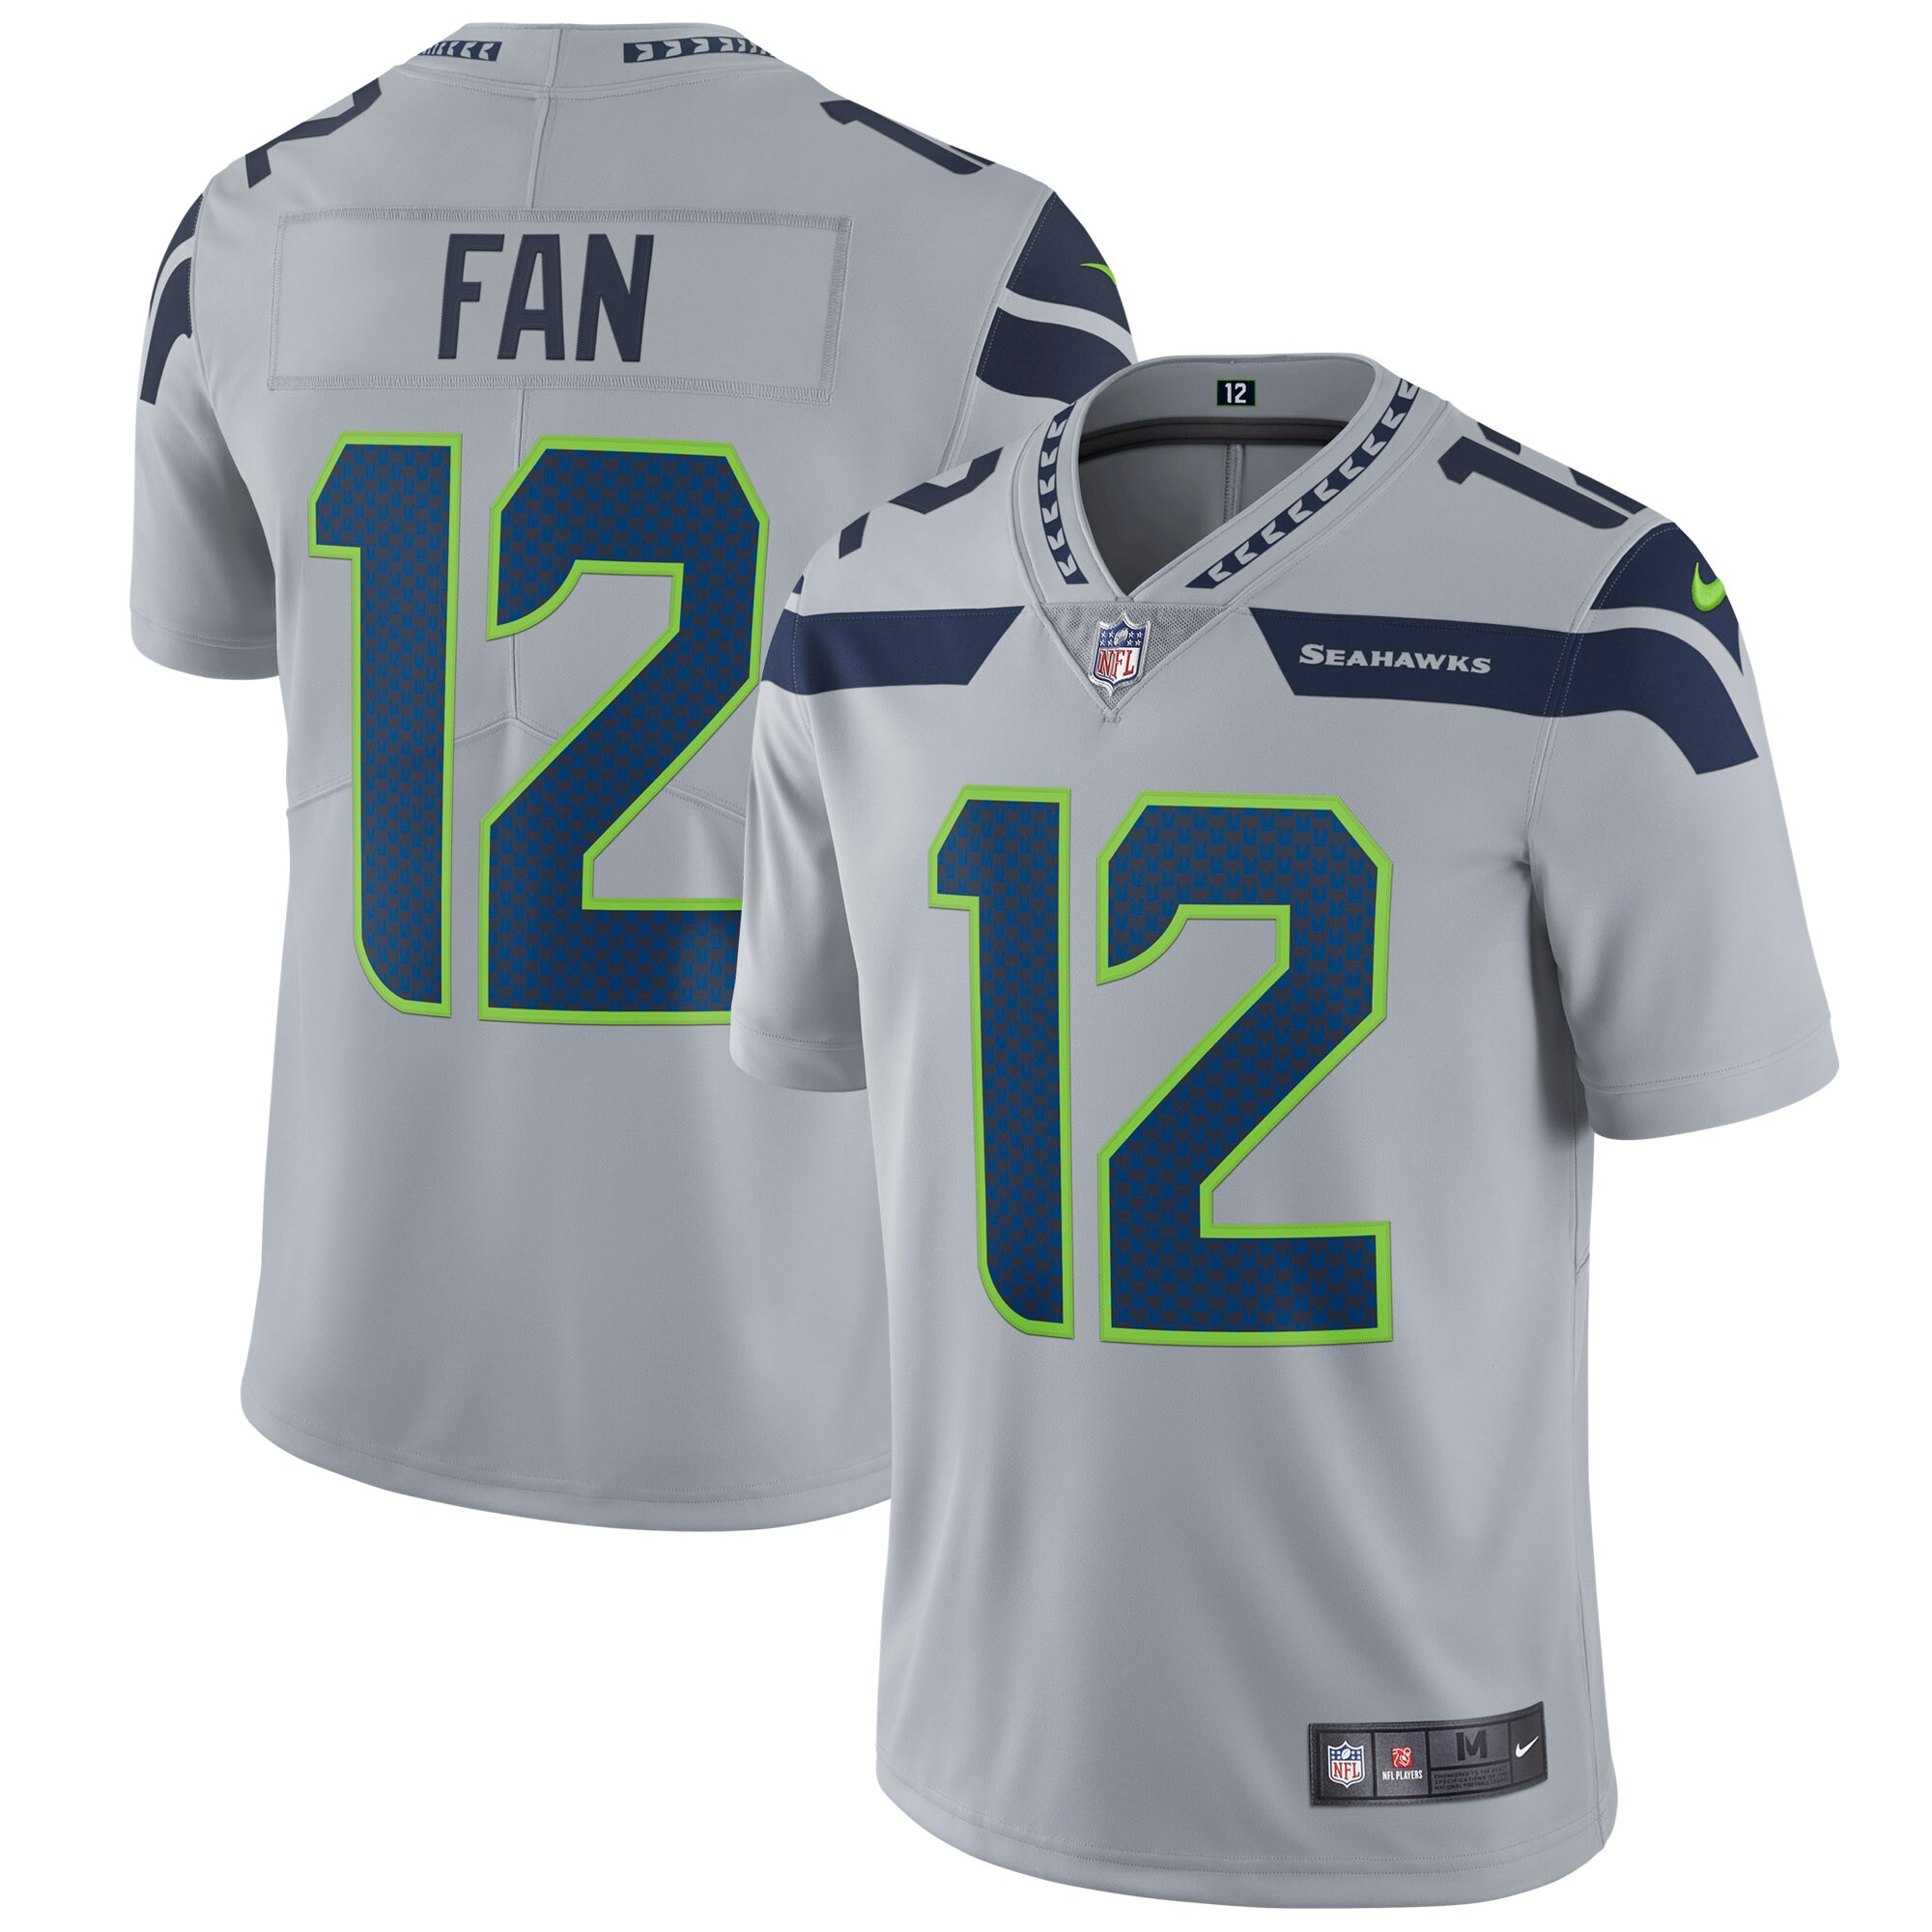 12s Seattle Seahawks Nike Vapor Untouchable Limited Player Jersey - Gray